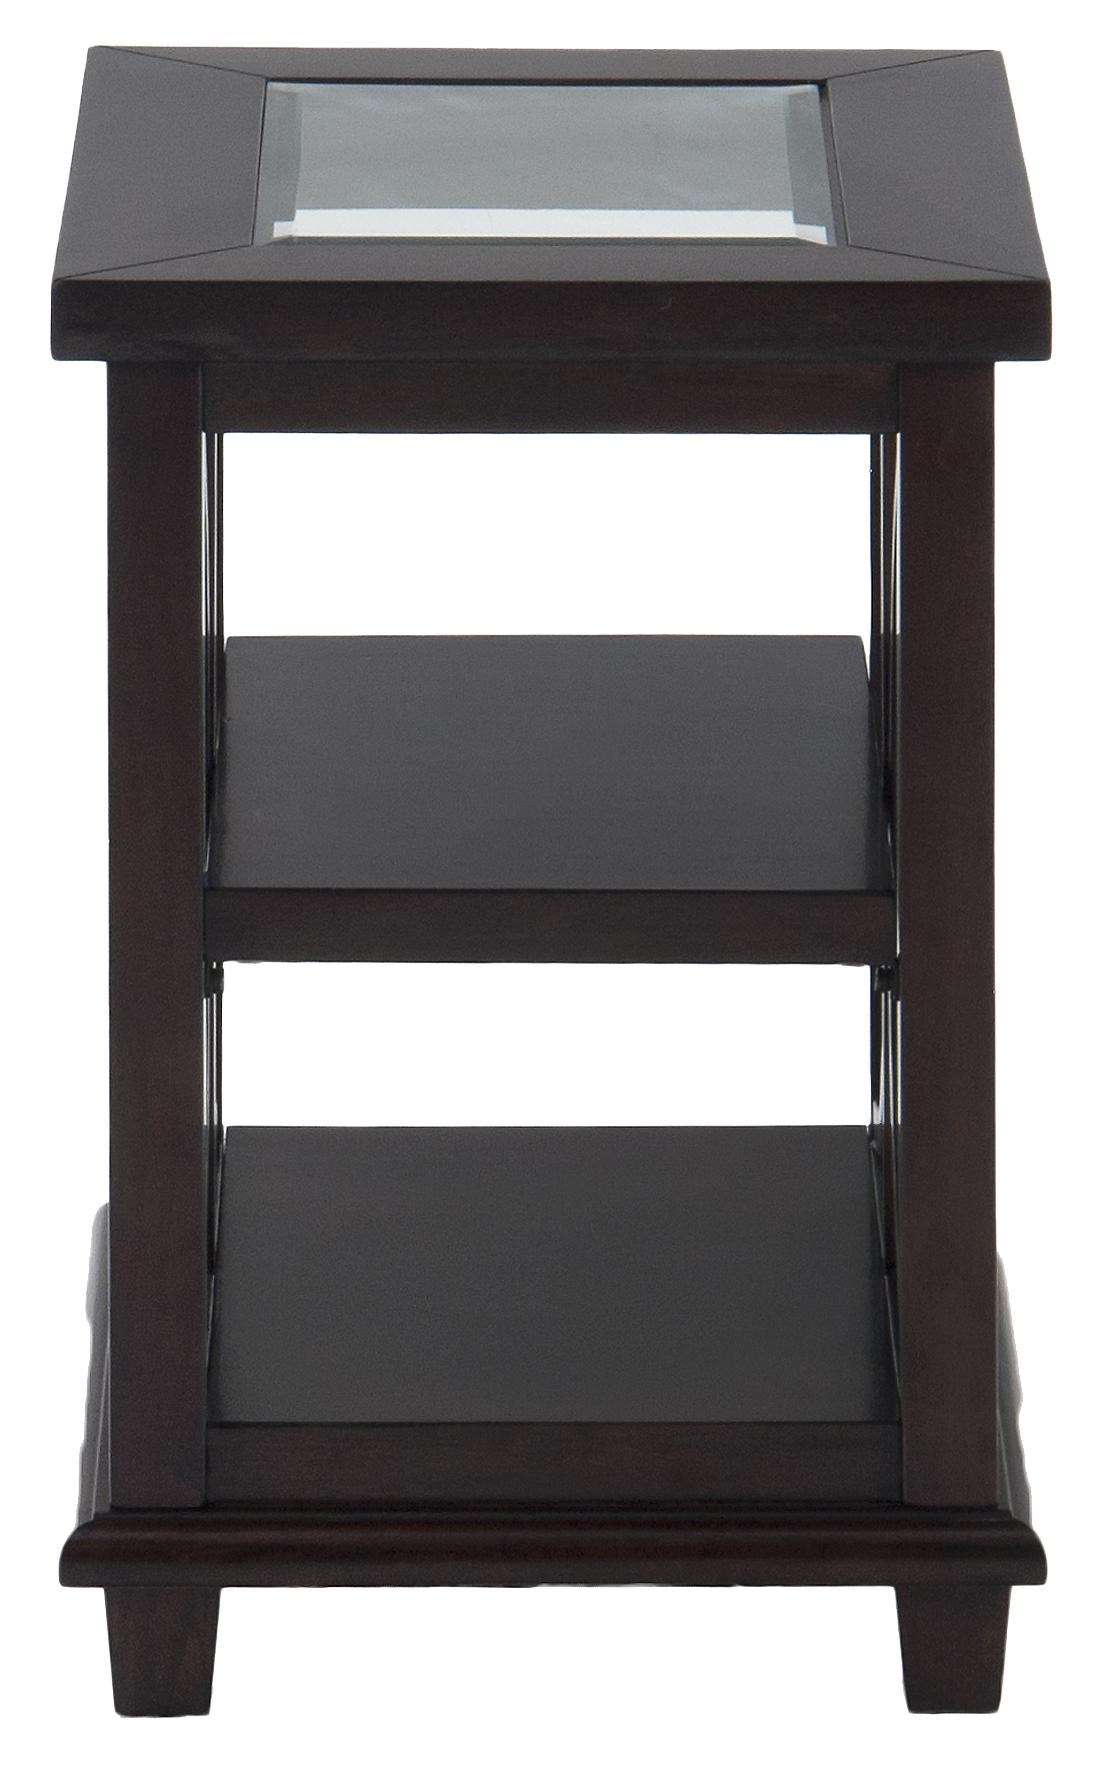 Contemporary Beveled Glass Chairside Table with Concentric Circle Design